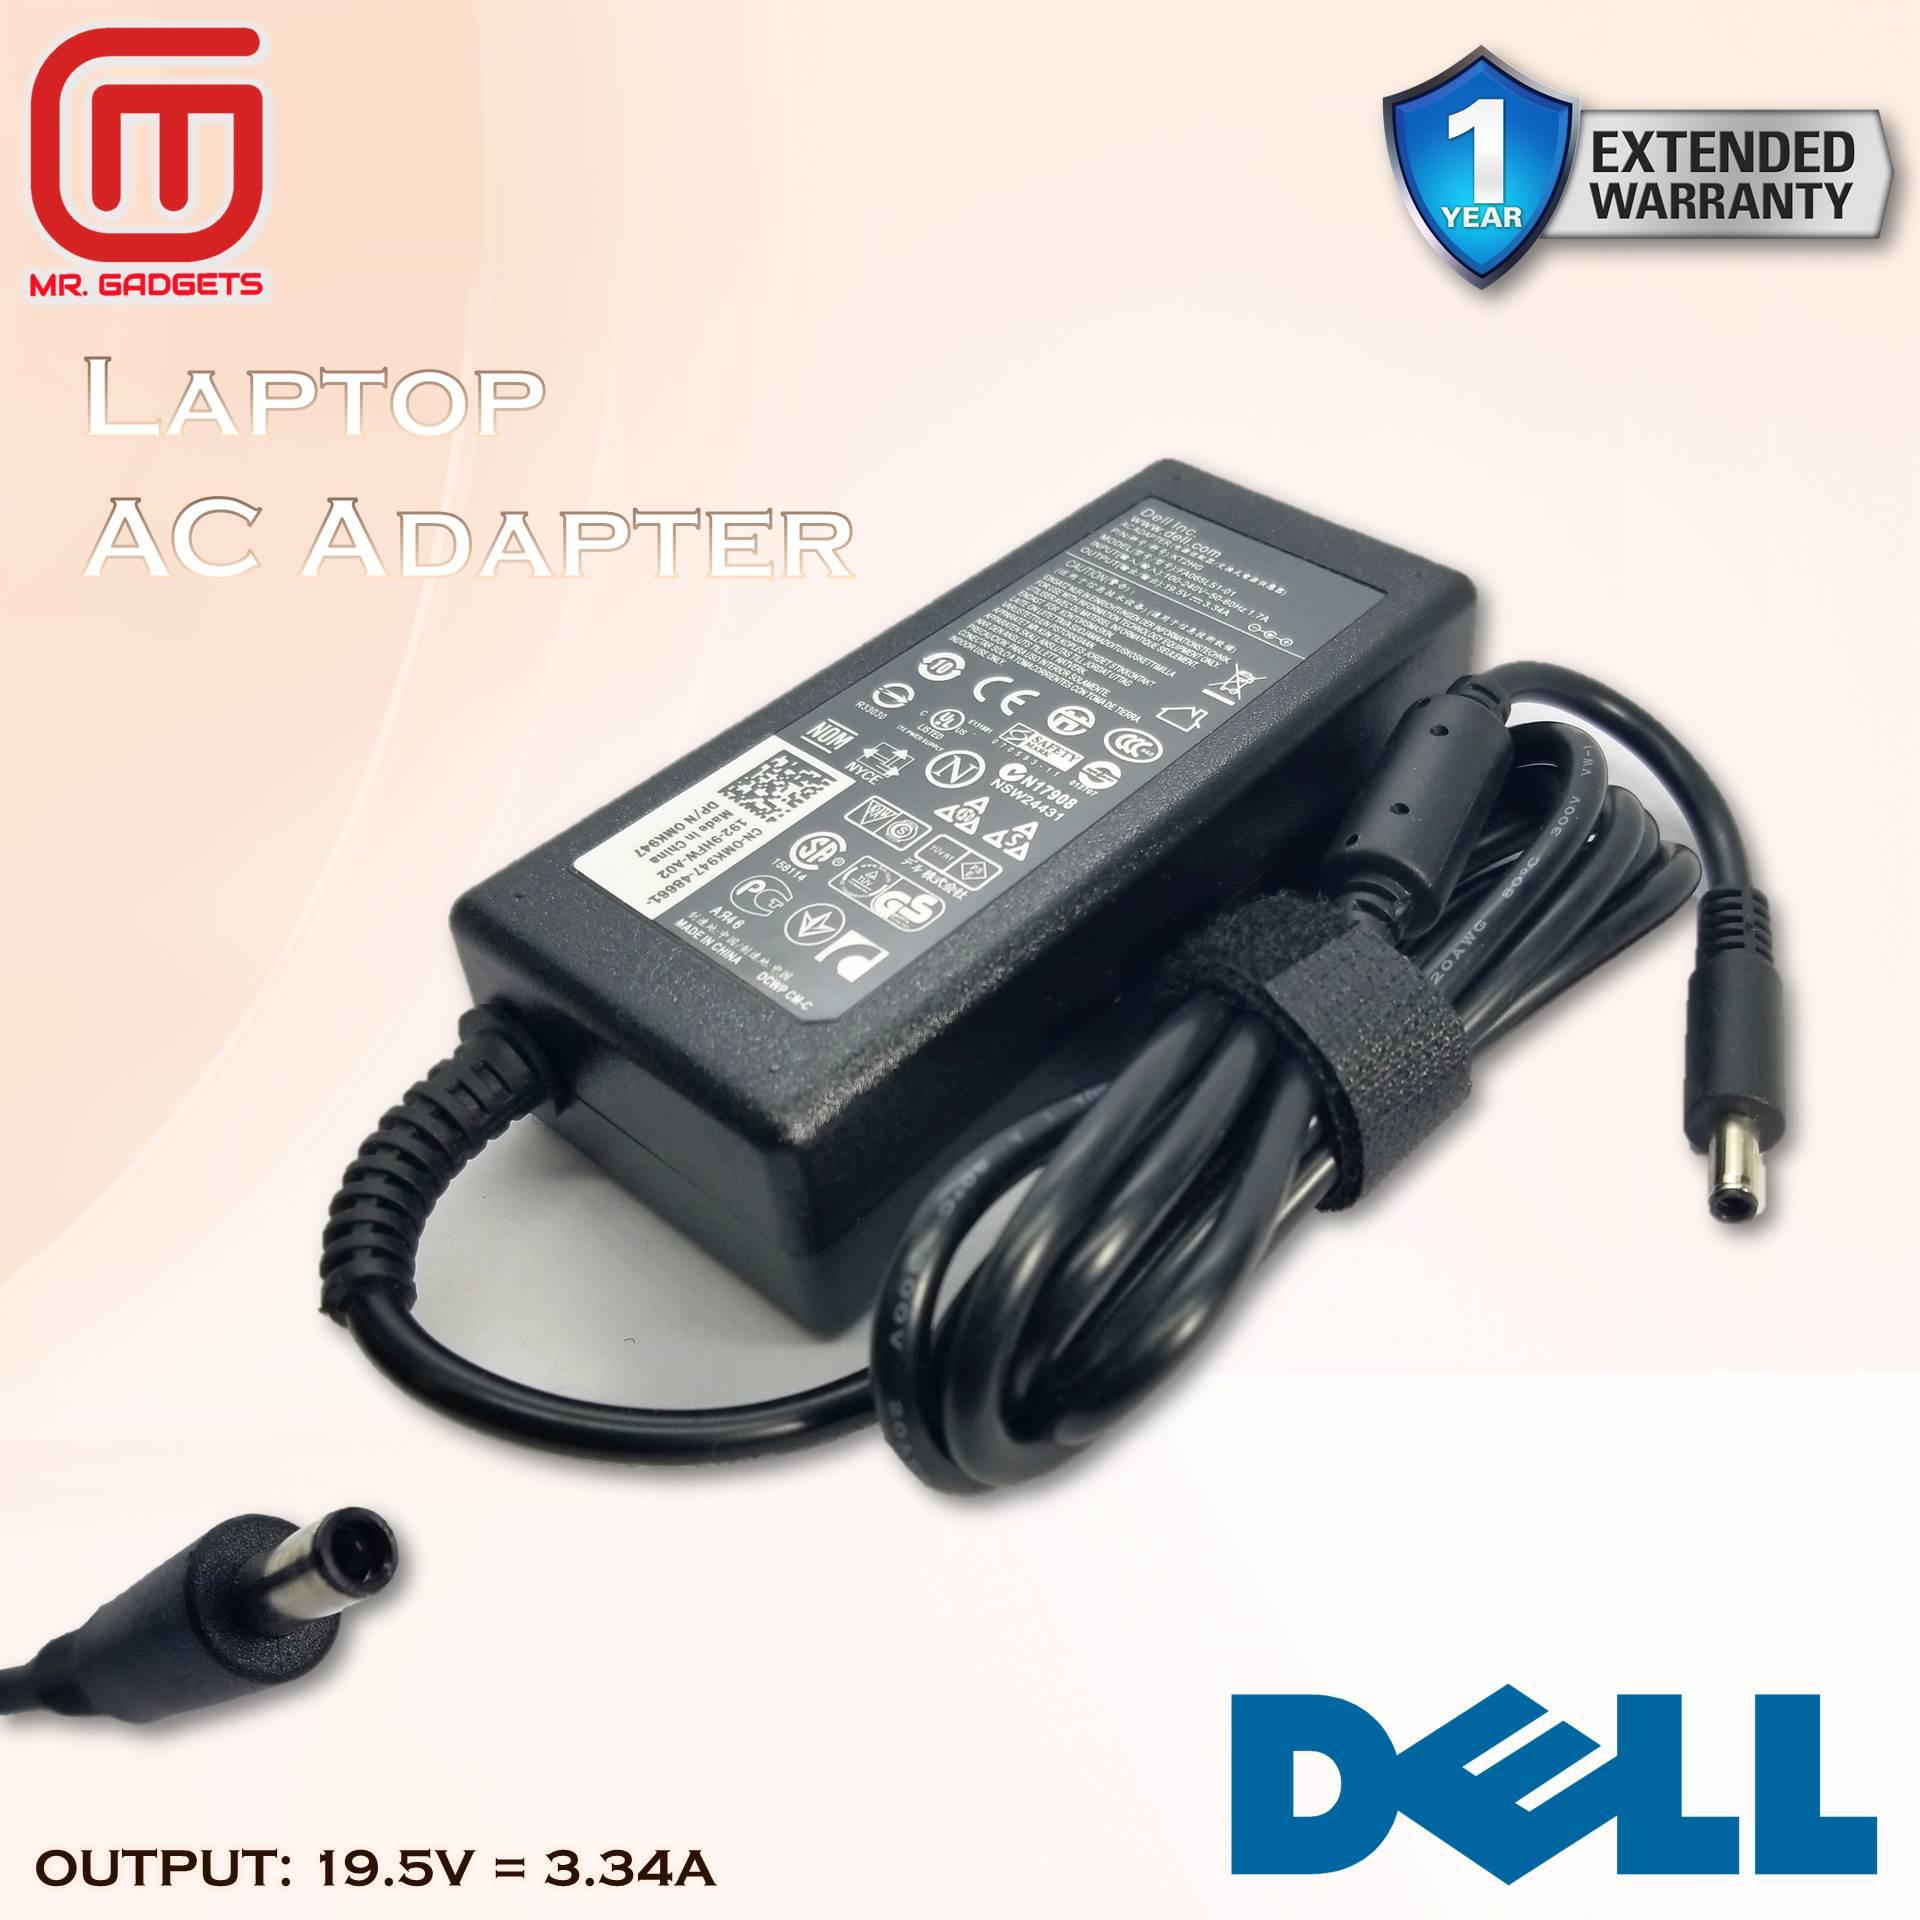 Dell Computer Accessories Philippines Pc For Sale Alienware M15x Power Button Circuit Board With Cable W 1 Year Charger Adapter 195v 334a 45mm X 30mm Inspiron 11 3000